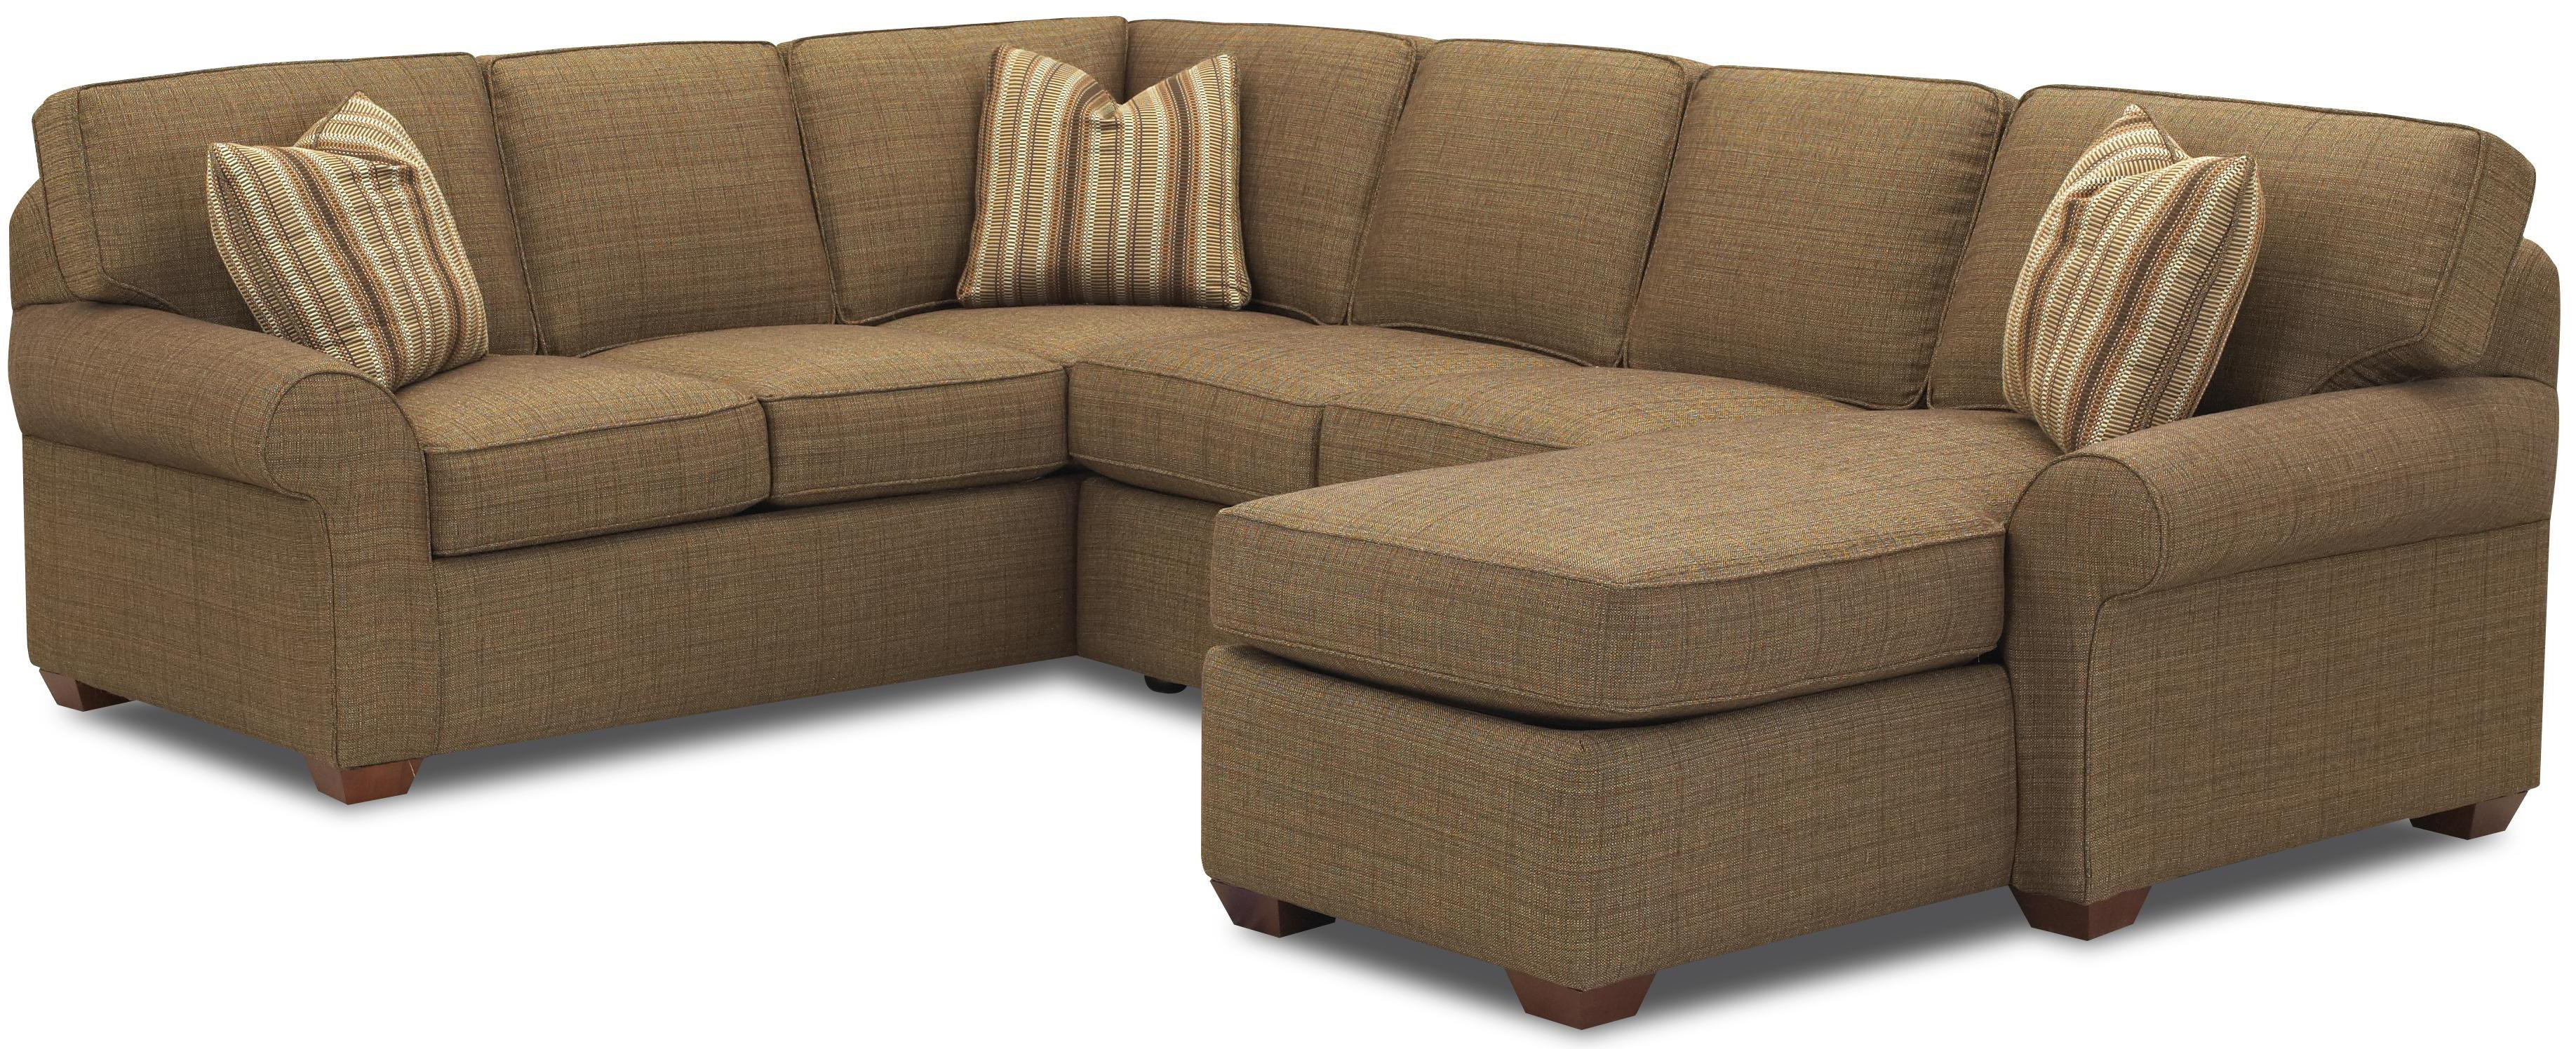 Gentil Klaussner Patterns Sectional Sofa Group With Right Chaise Lounge | Value  City Furniture | Sectional Sofas